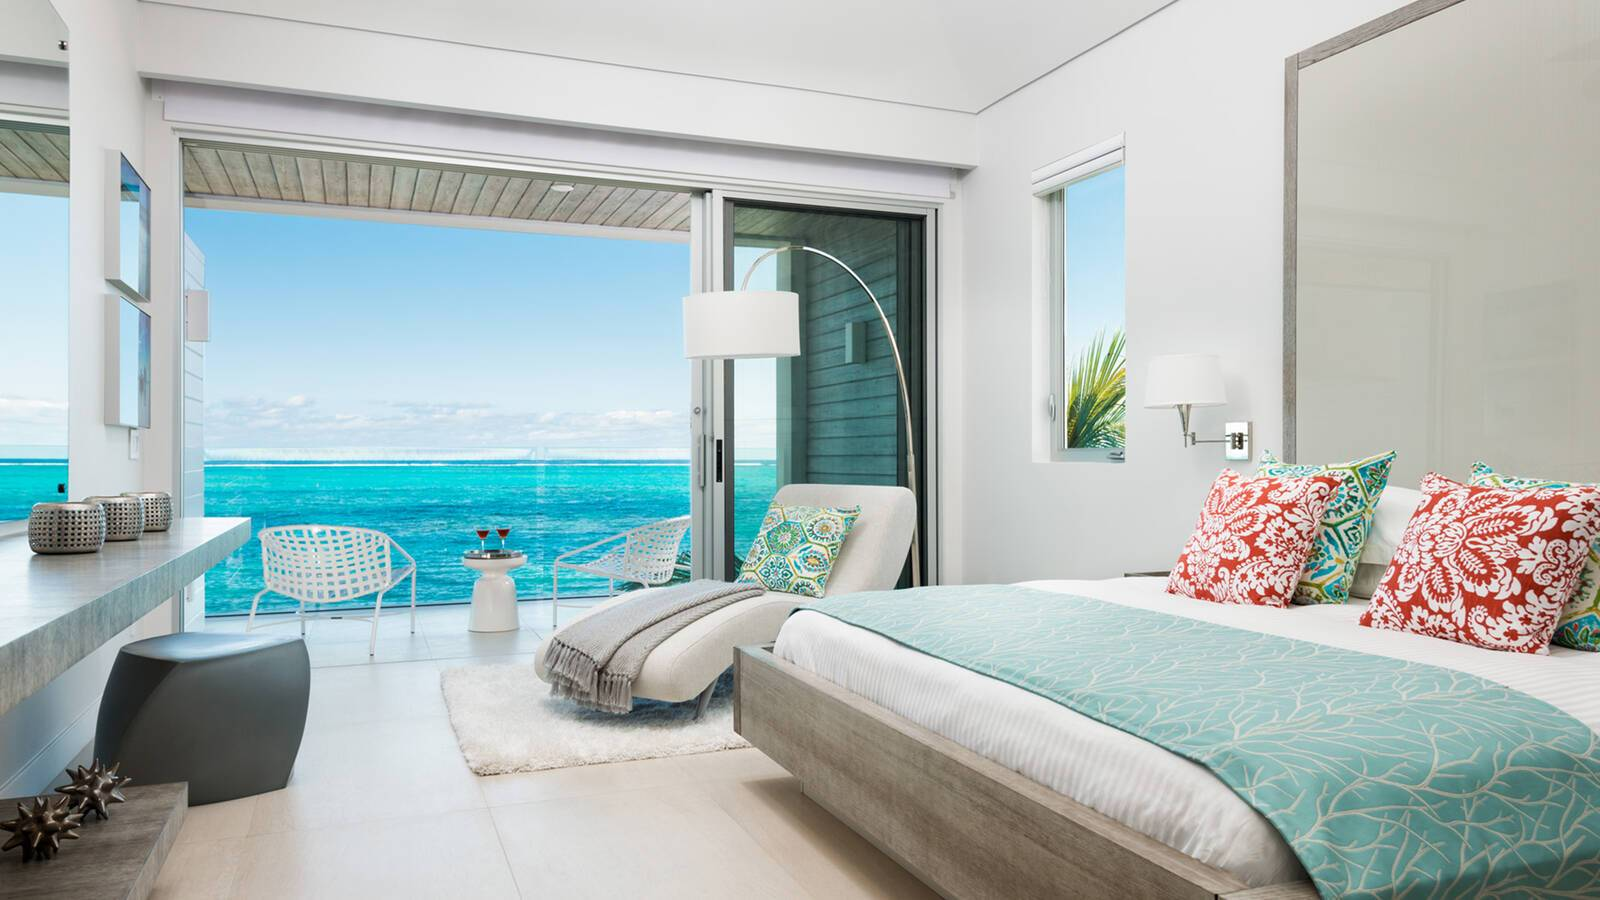 Grace Bay Villa The Dunes Turks et Caicos